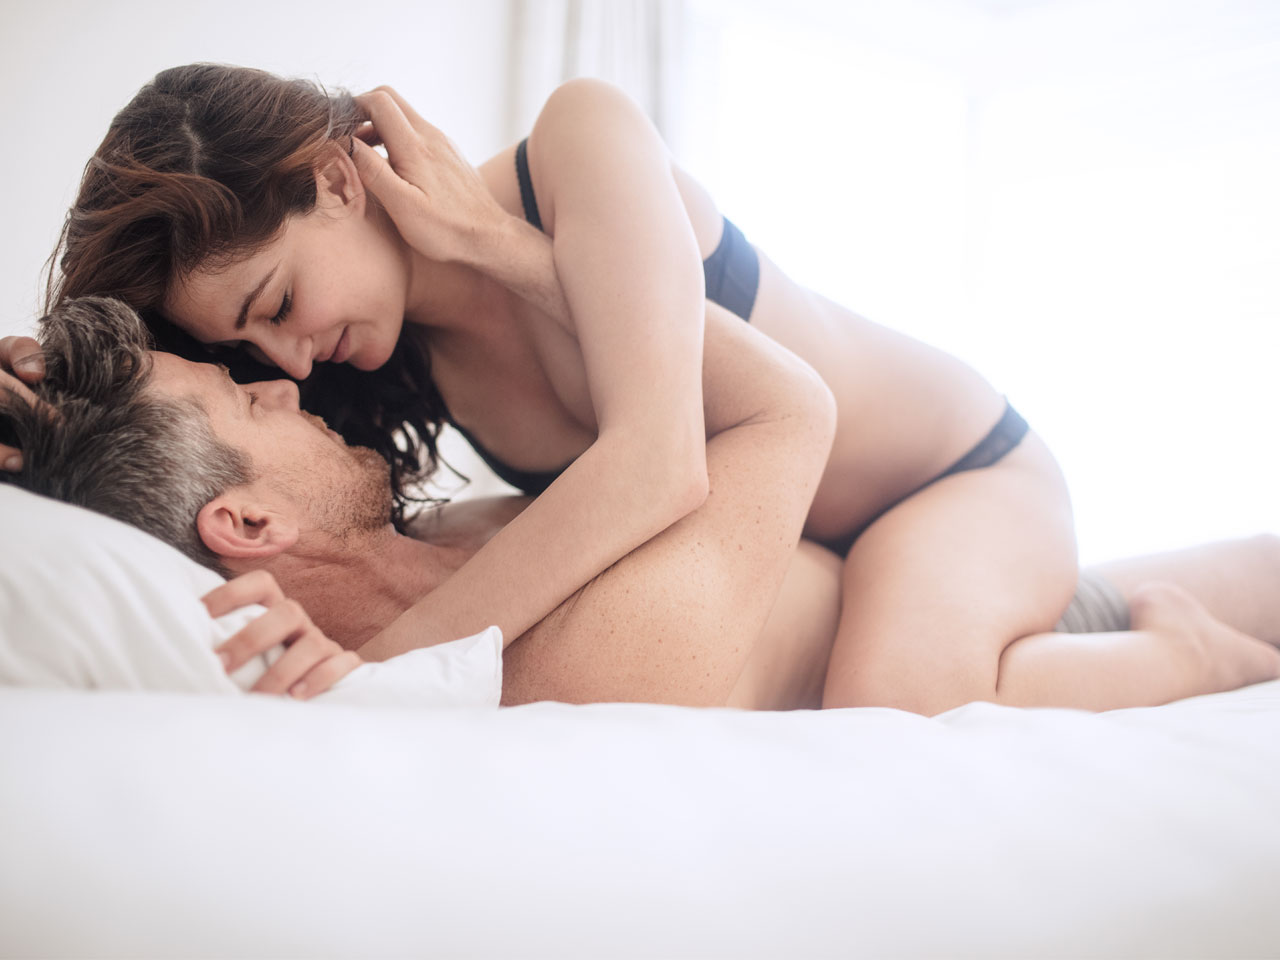 couples having sex picture